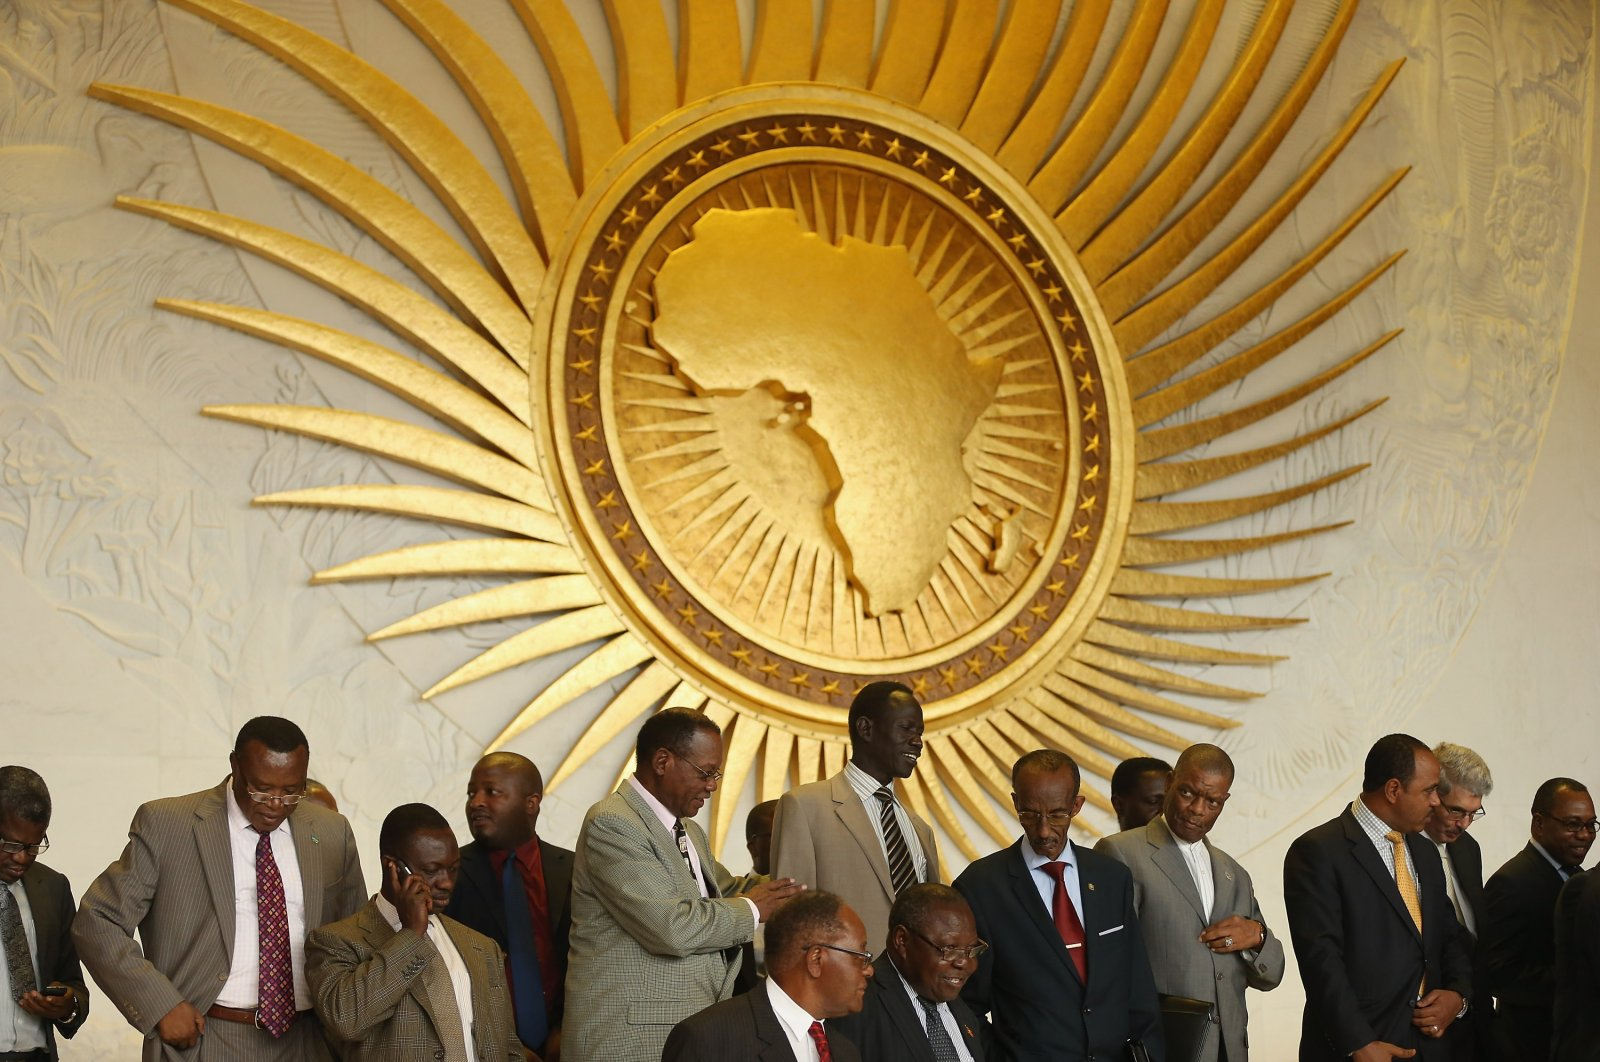 Delegates arrange themselves for a group picture during a visit by the German president to the headquarters of the African Union (AU) in Addis Ababa, Ethiopia on March 18, 2013. (Getty Images)